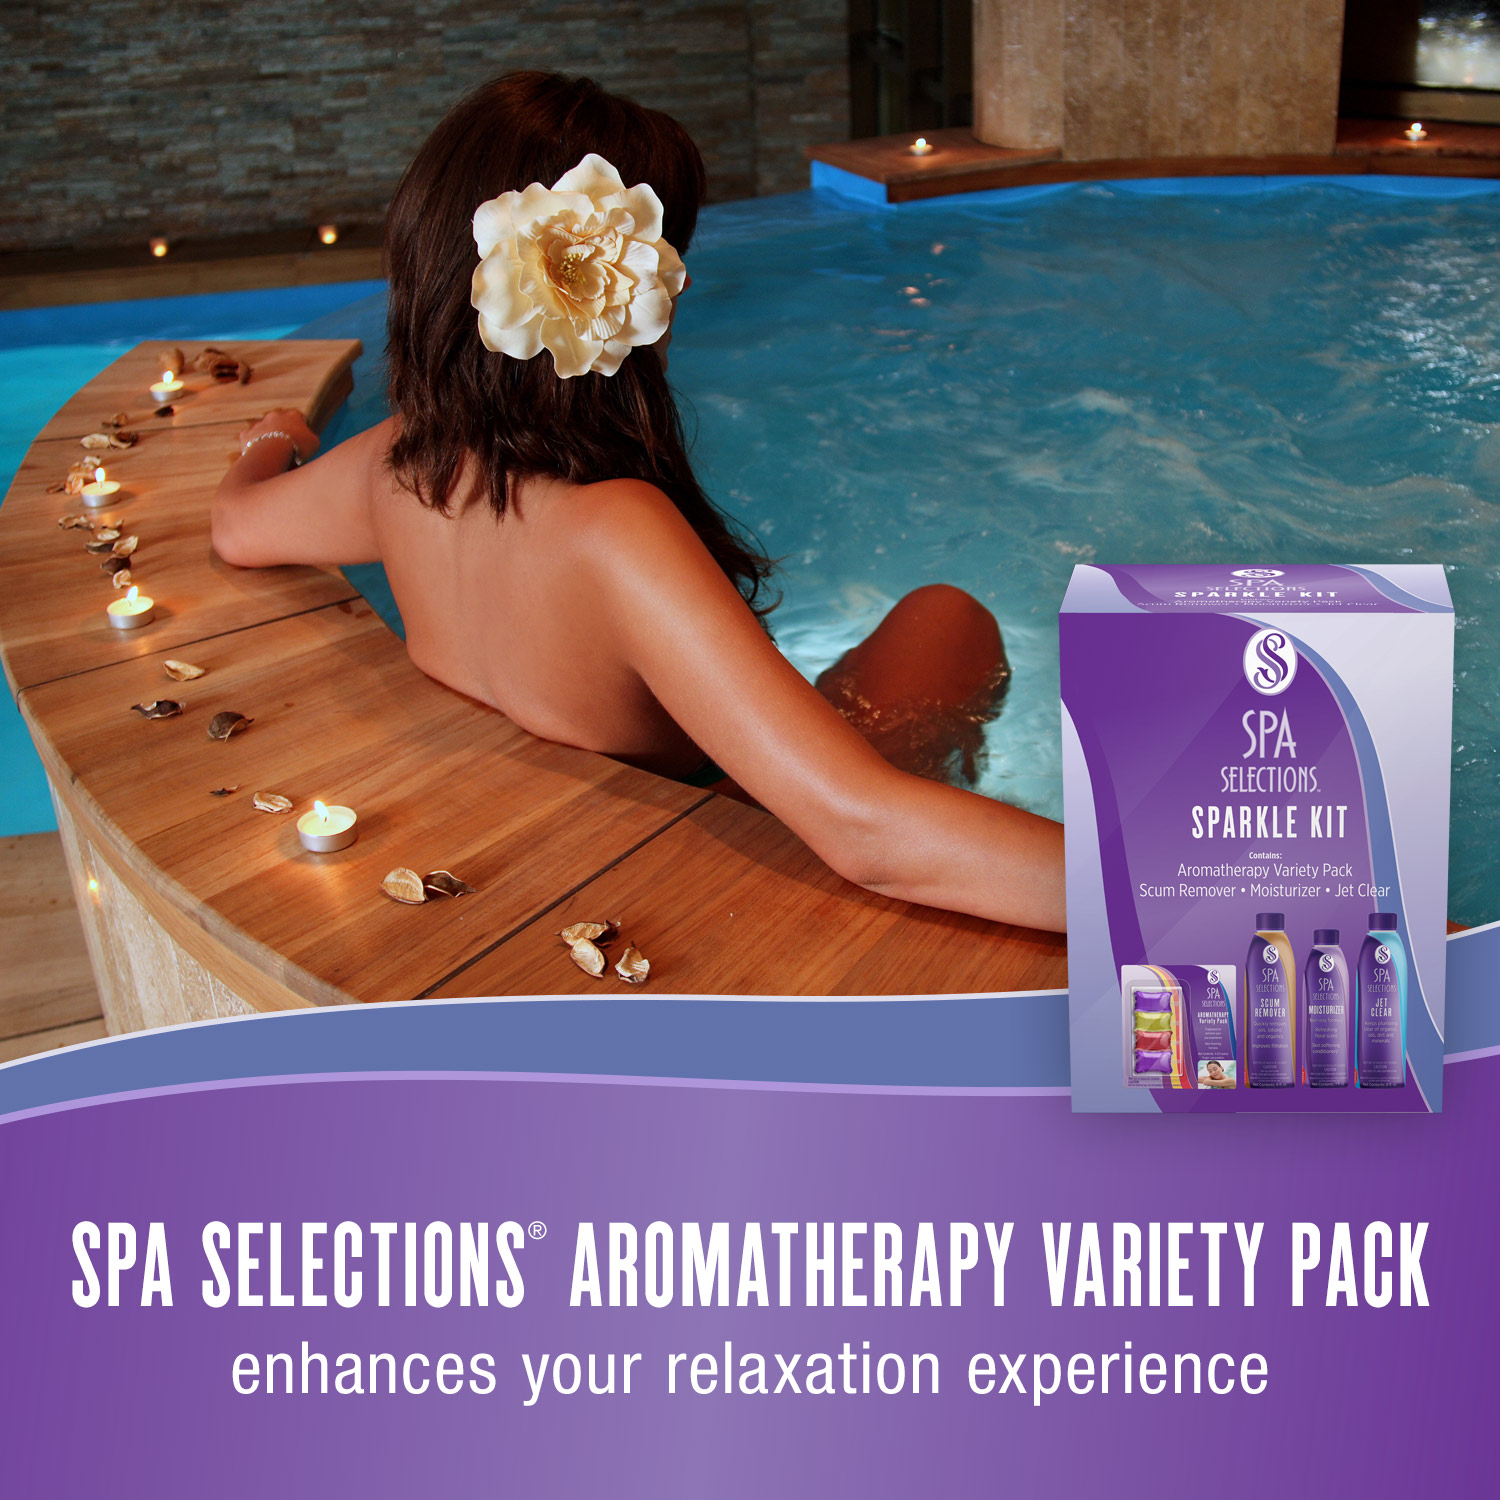 Spa Selections aromatherapy variety pack enhances your relaxation experience. Photo of woman with a flower in her hair enjoying an outdoor hot tub.